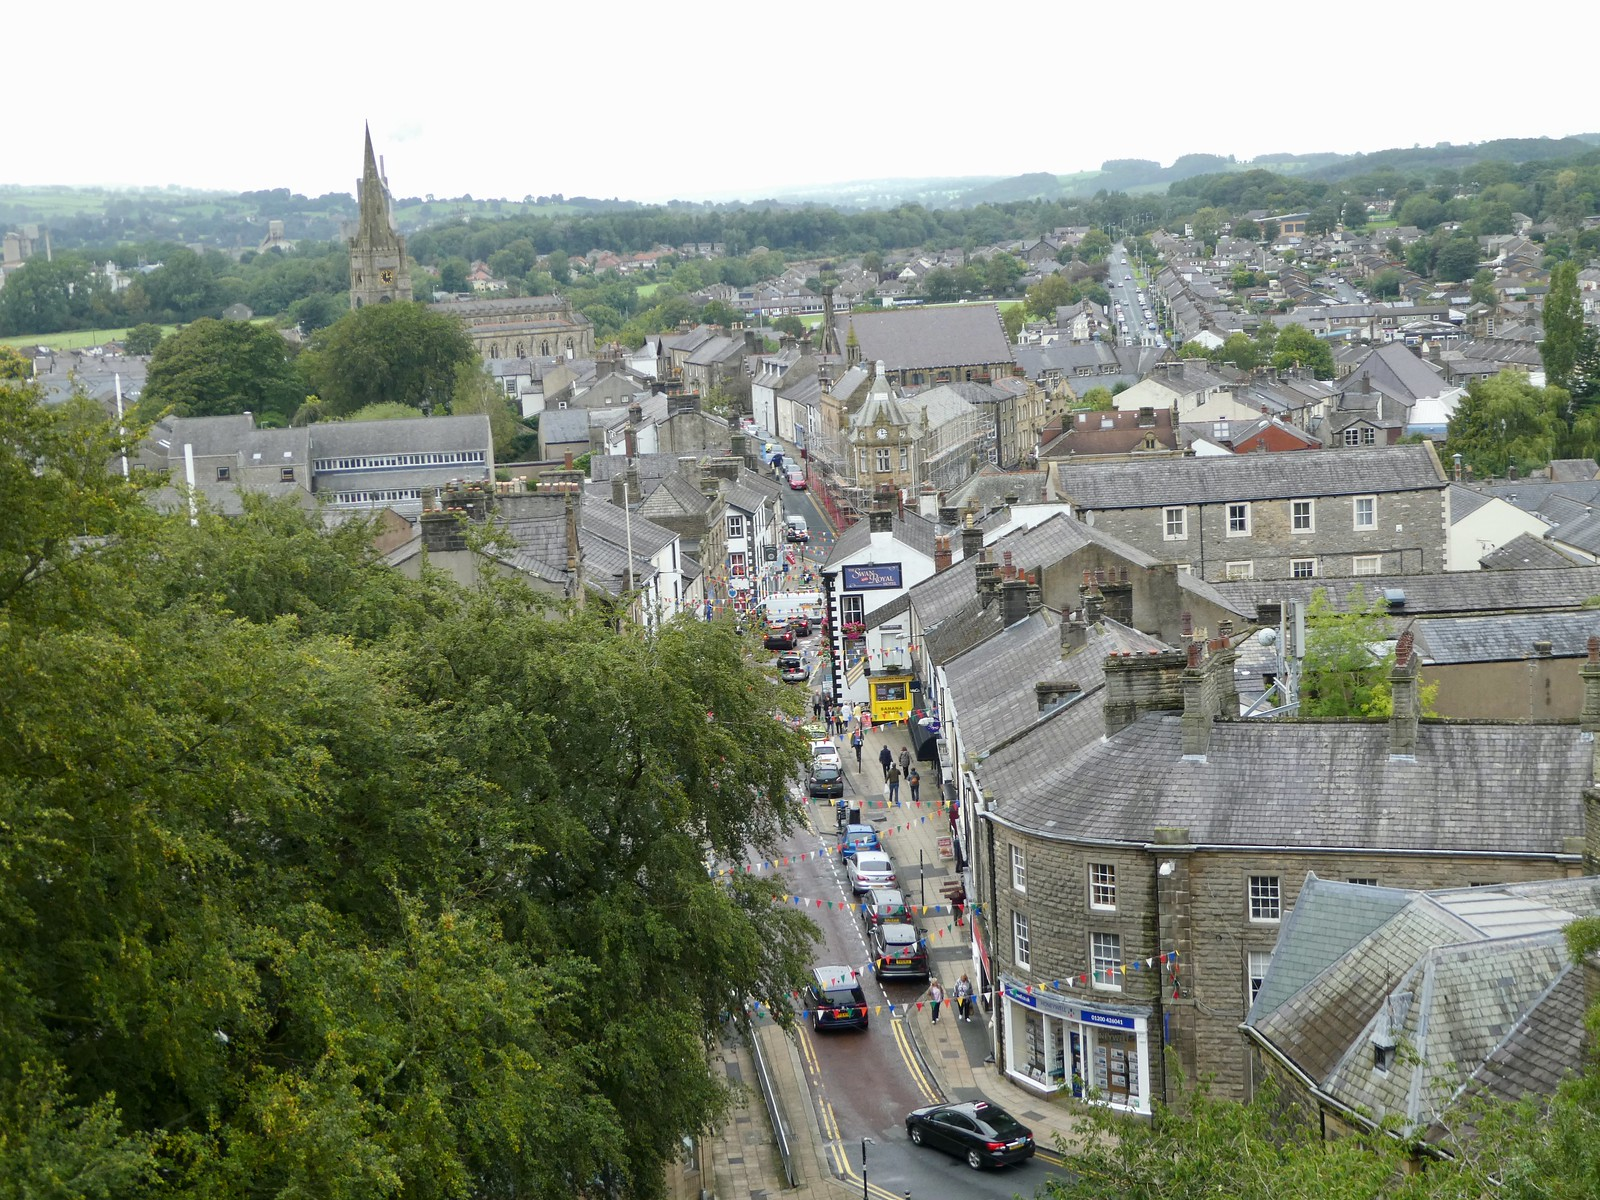 Castle Street, Clitheroe viewed from the castle keep